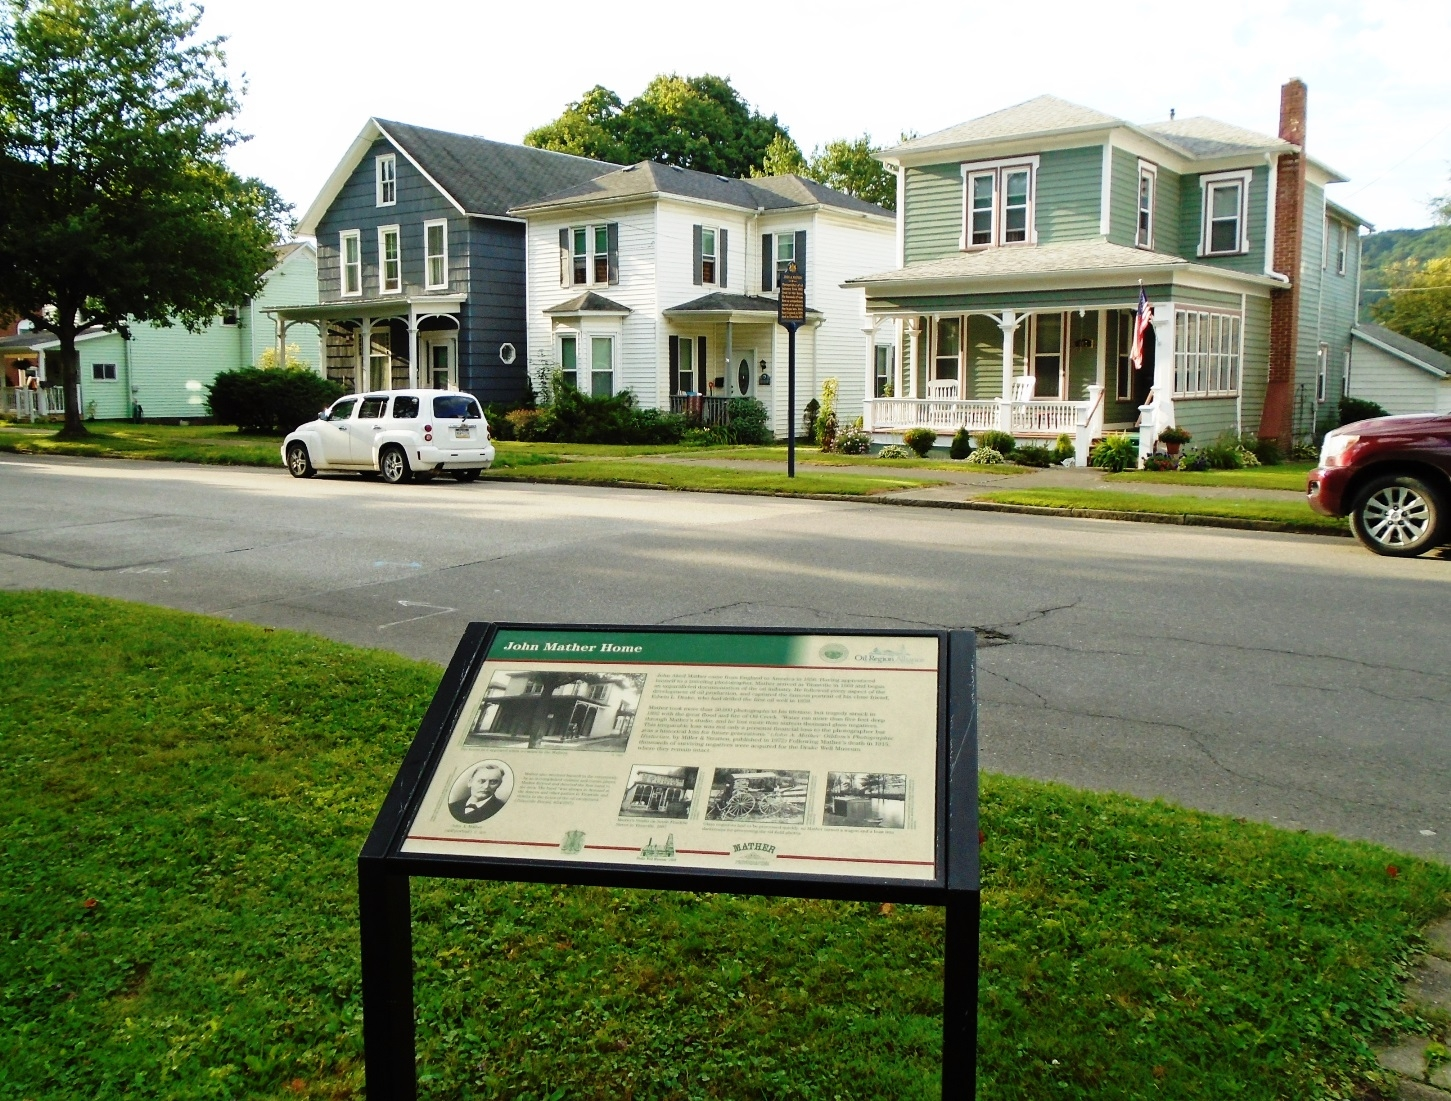 John Mather Home and Marker